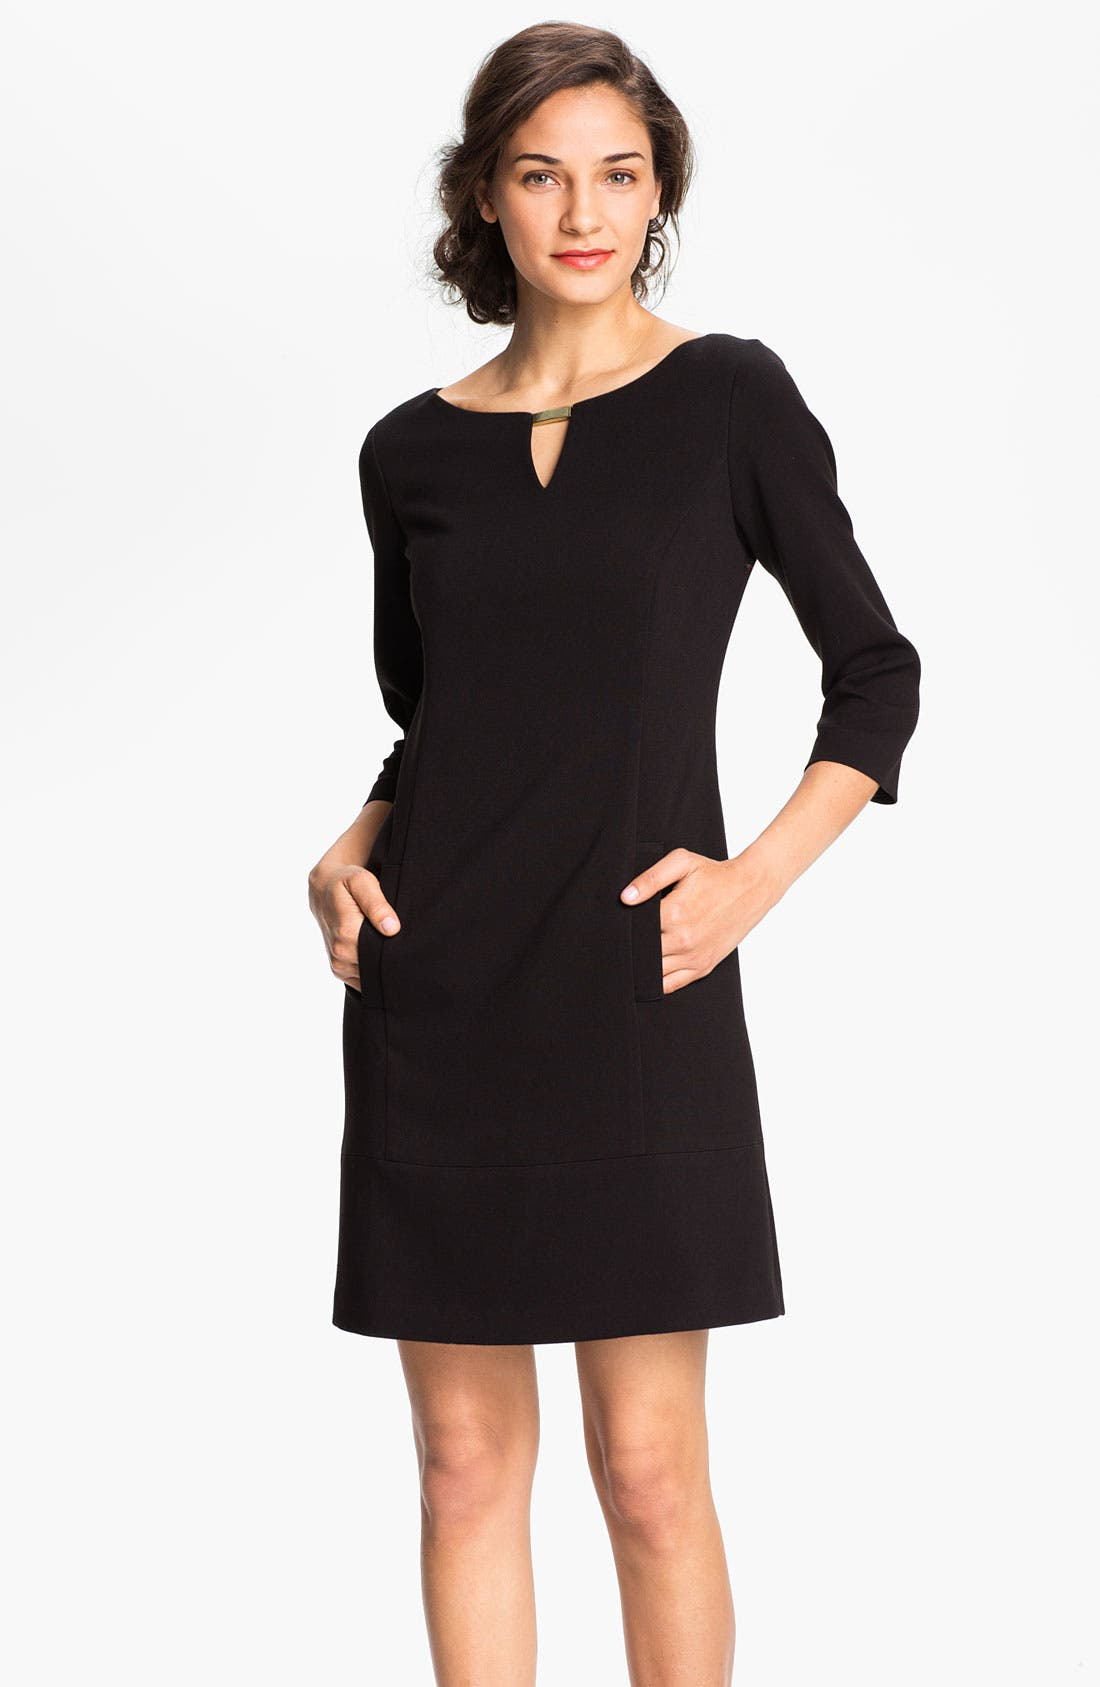 Alternate Image 1 Selected - Eliza J Keyhole Knit Shift Dress (Petite)